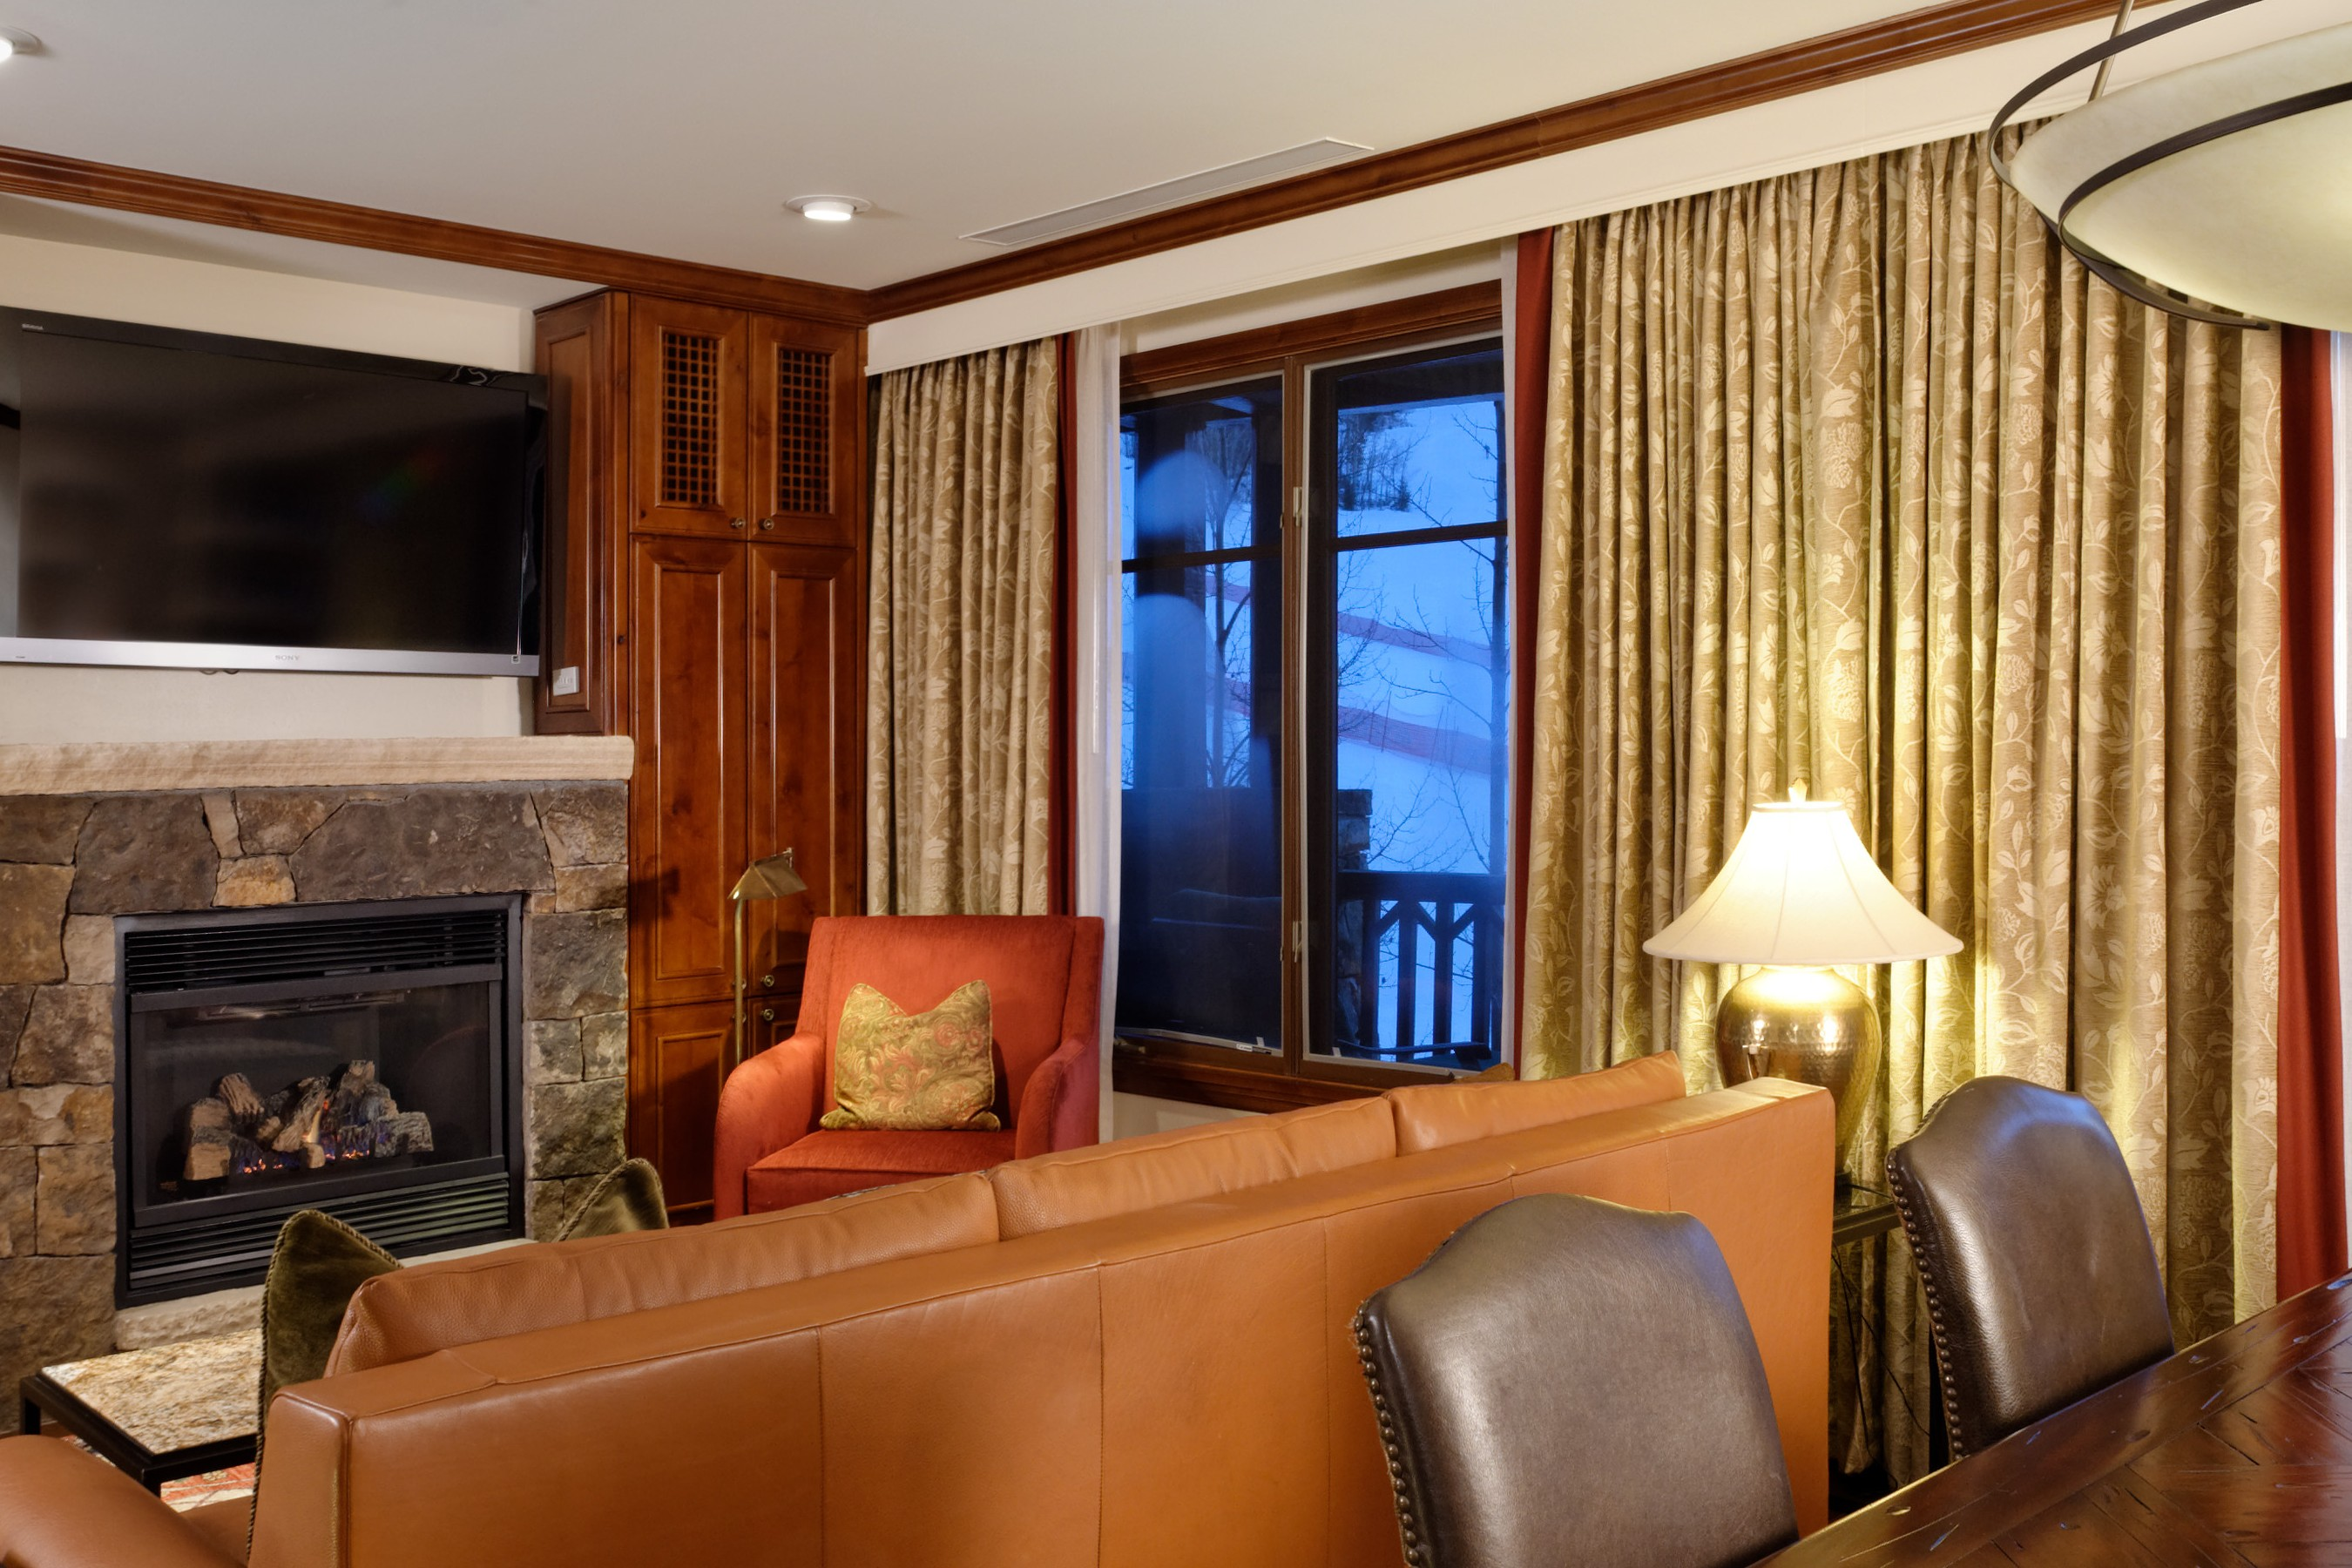 Fractional Ownership for Sale at Ritz-Carlton Club Aspen Highlands Fractional Condo Interest 0197 Prospector Road, 2304, Fixed Weeks 7, 12, 31, Ritz-Carlton Club Aspen, Colorado, 81611 United States